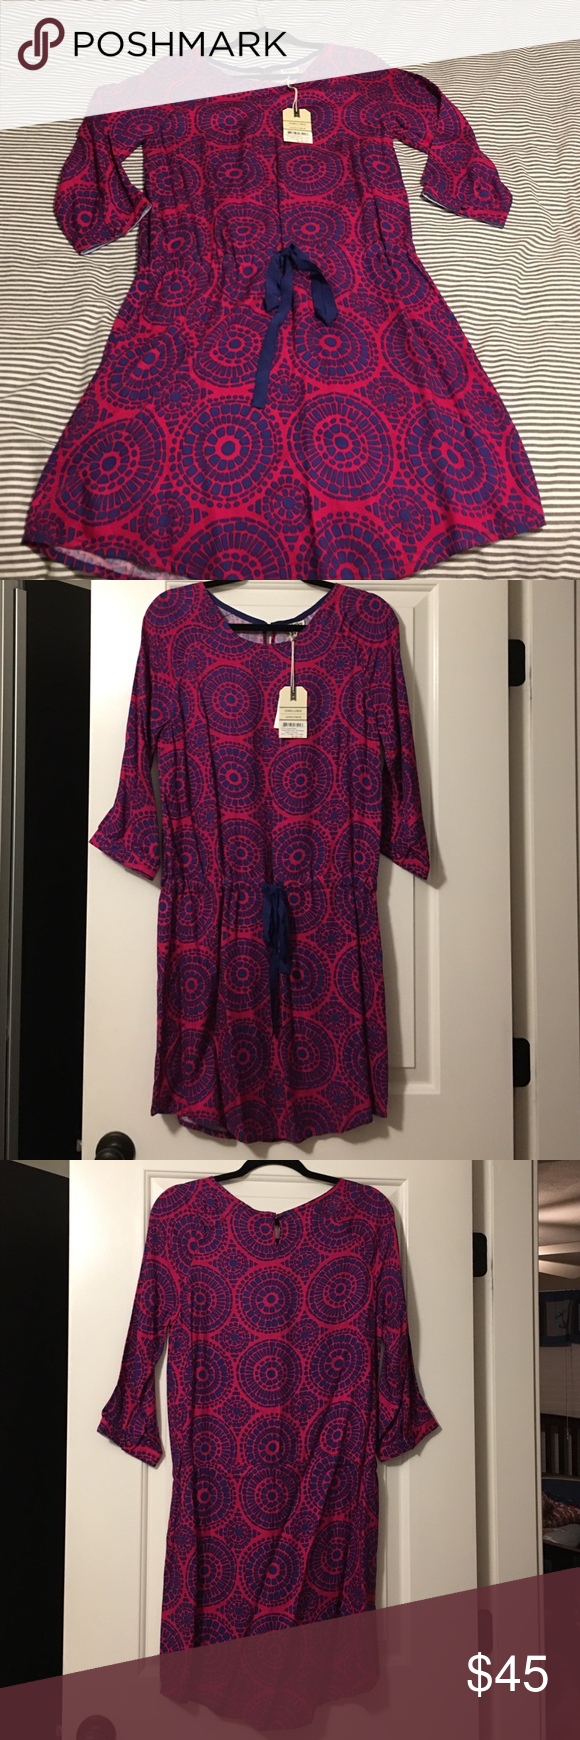 Hatley nwt dress Cute dress cinched at waist never worn, great for a summer evening Hatley Dresses Midi